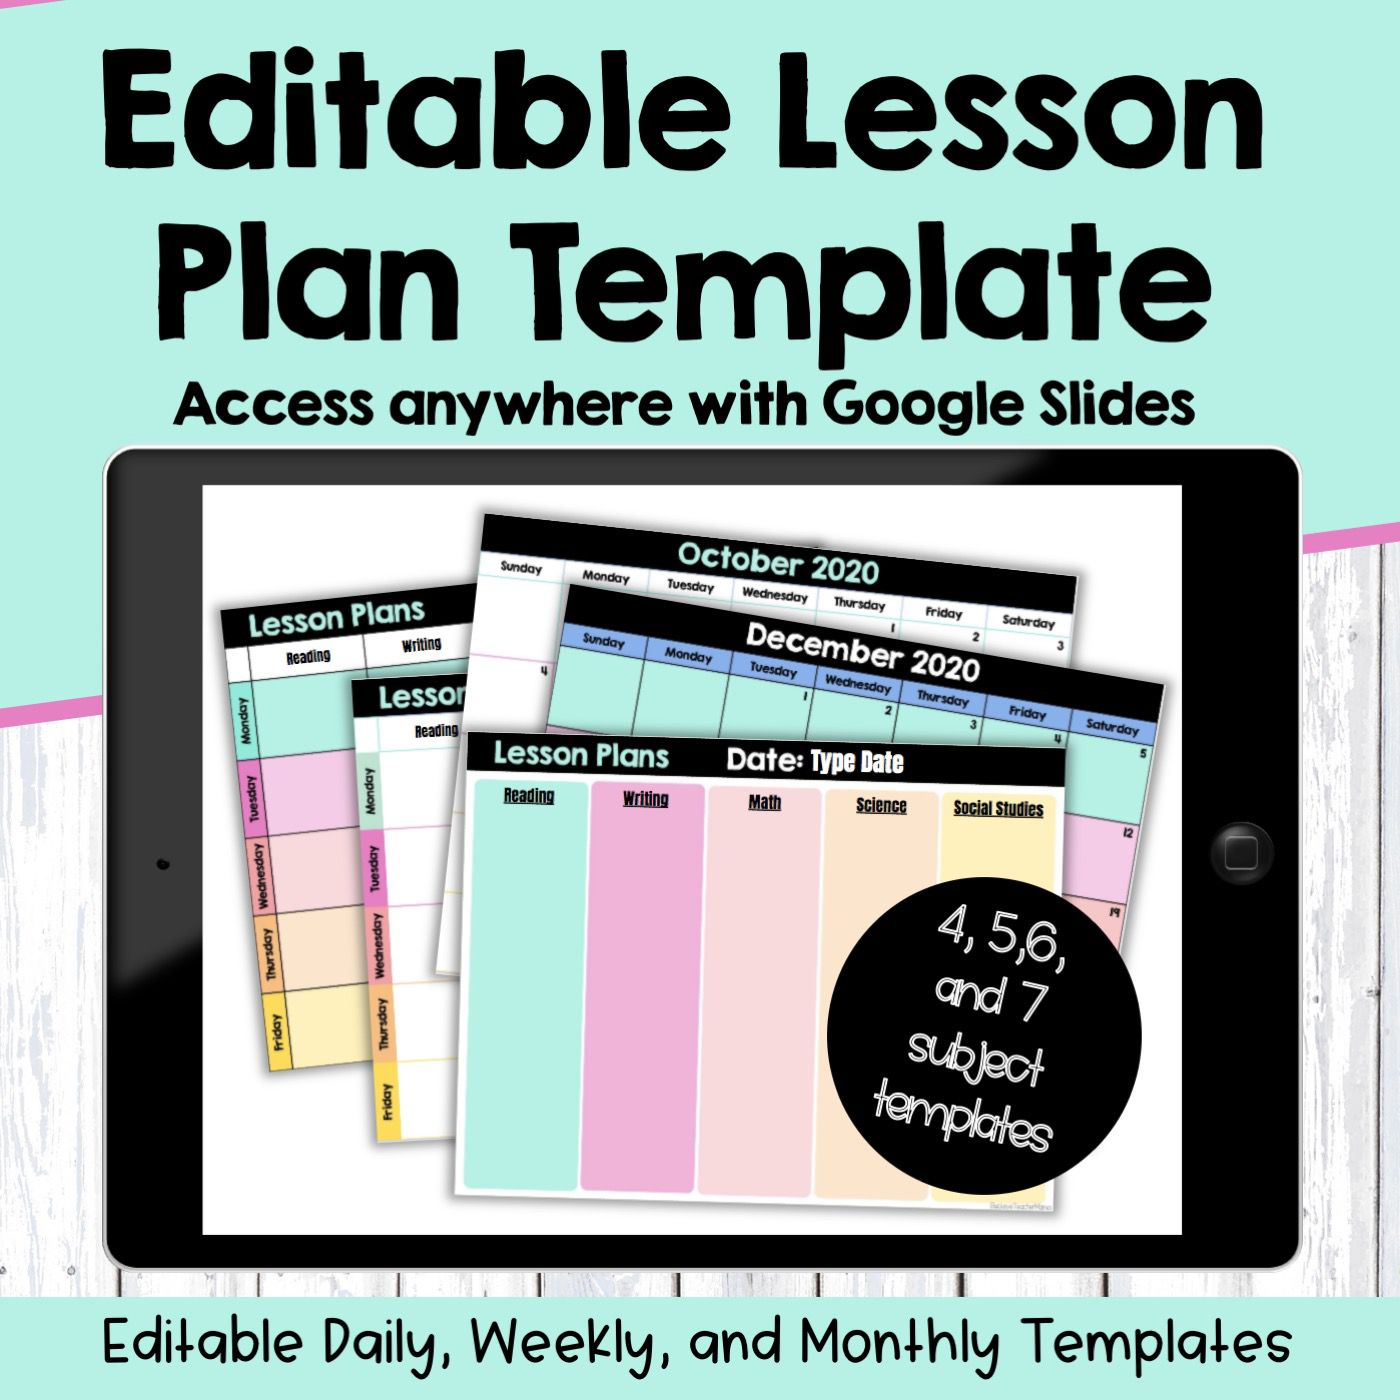 007 Stupendou Editable Lesson Plan Template Middle School Example Full